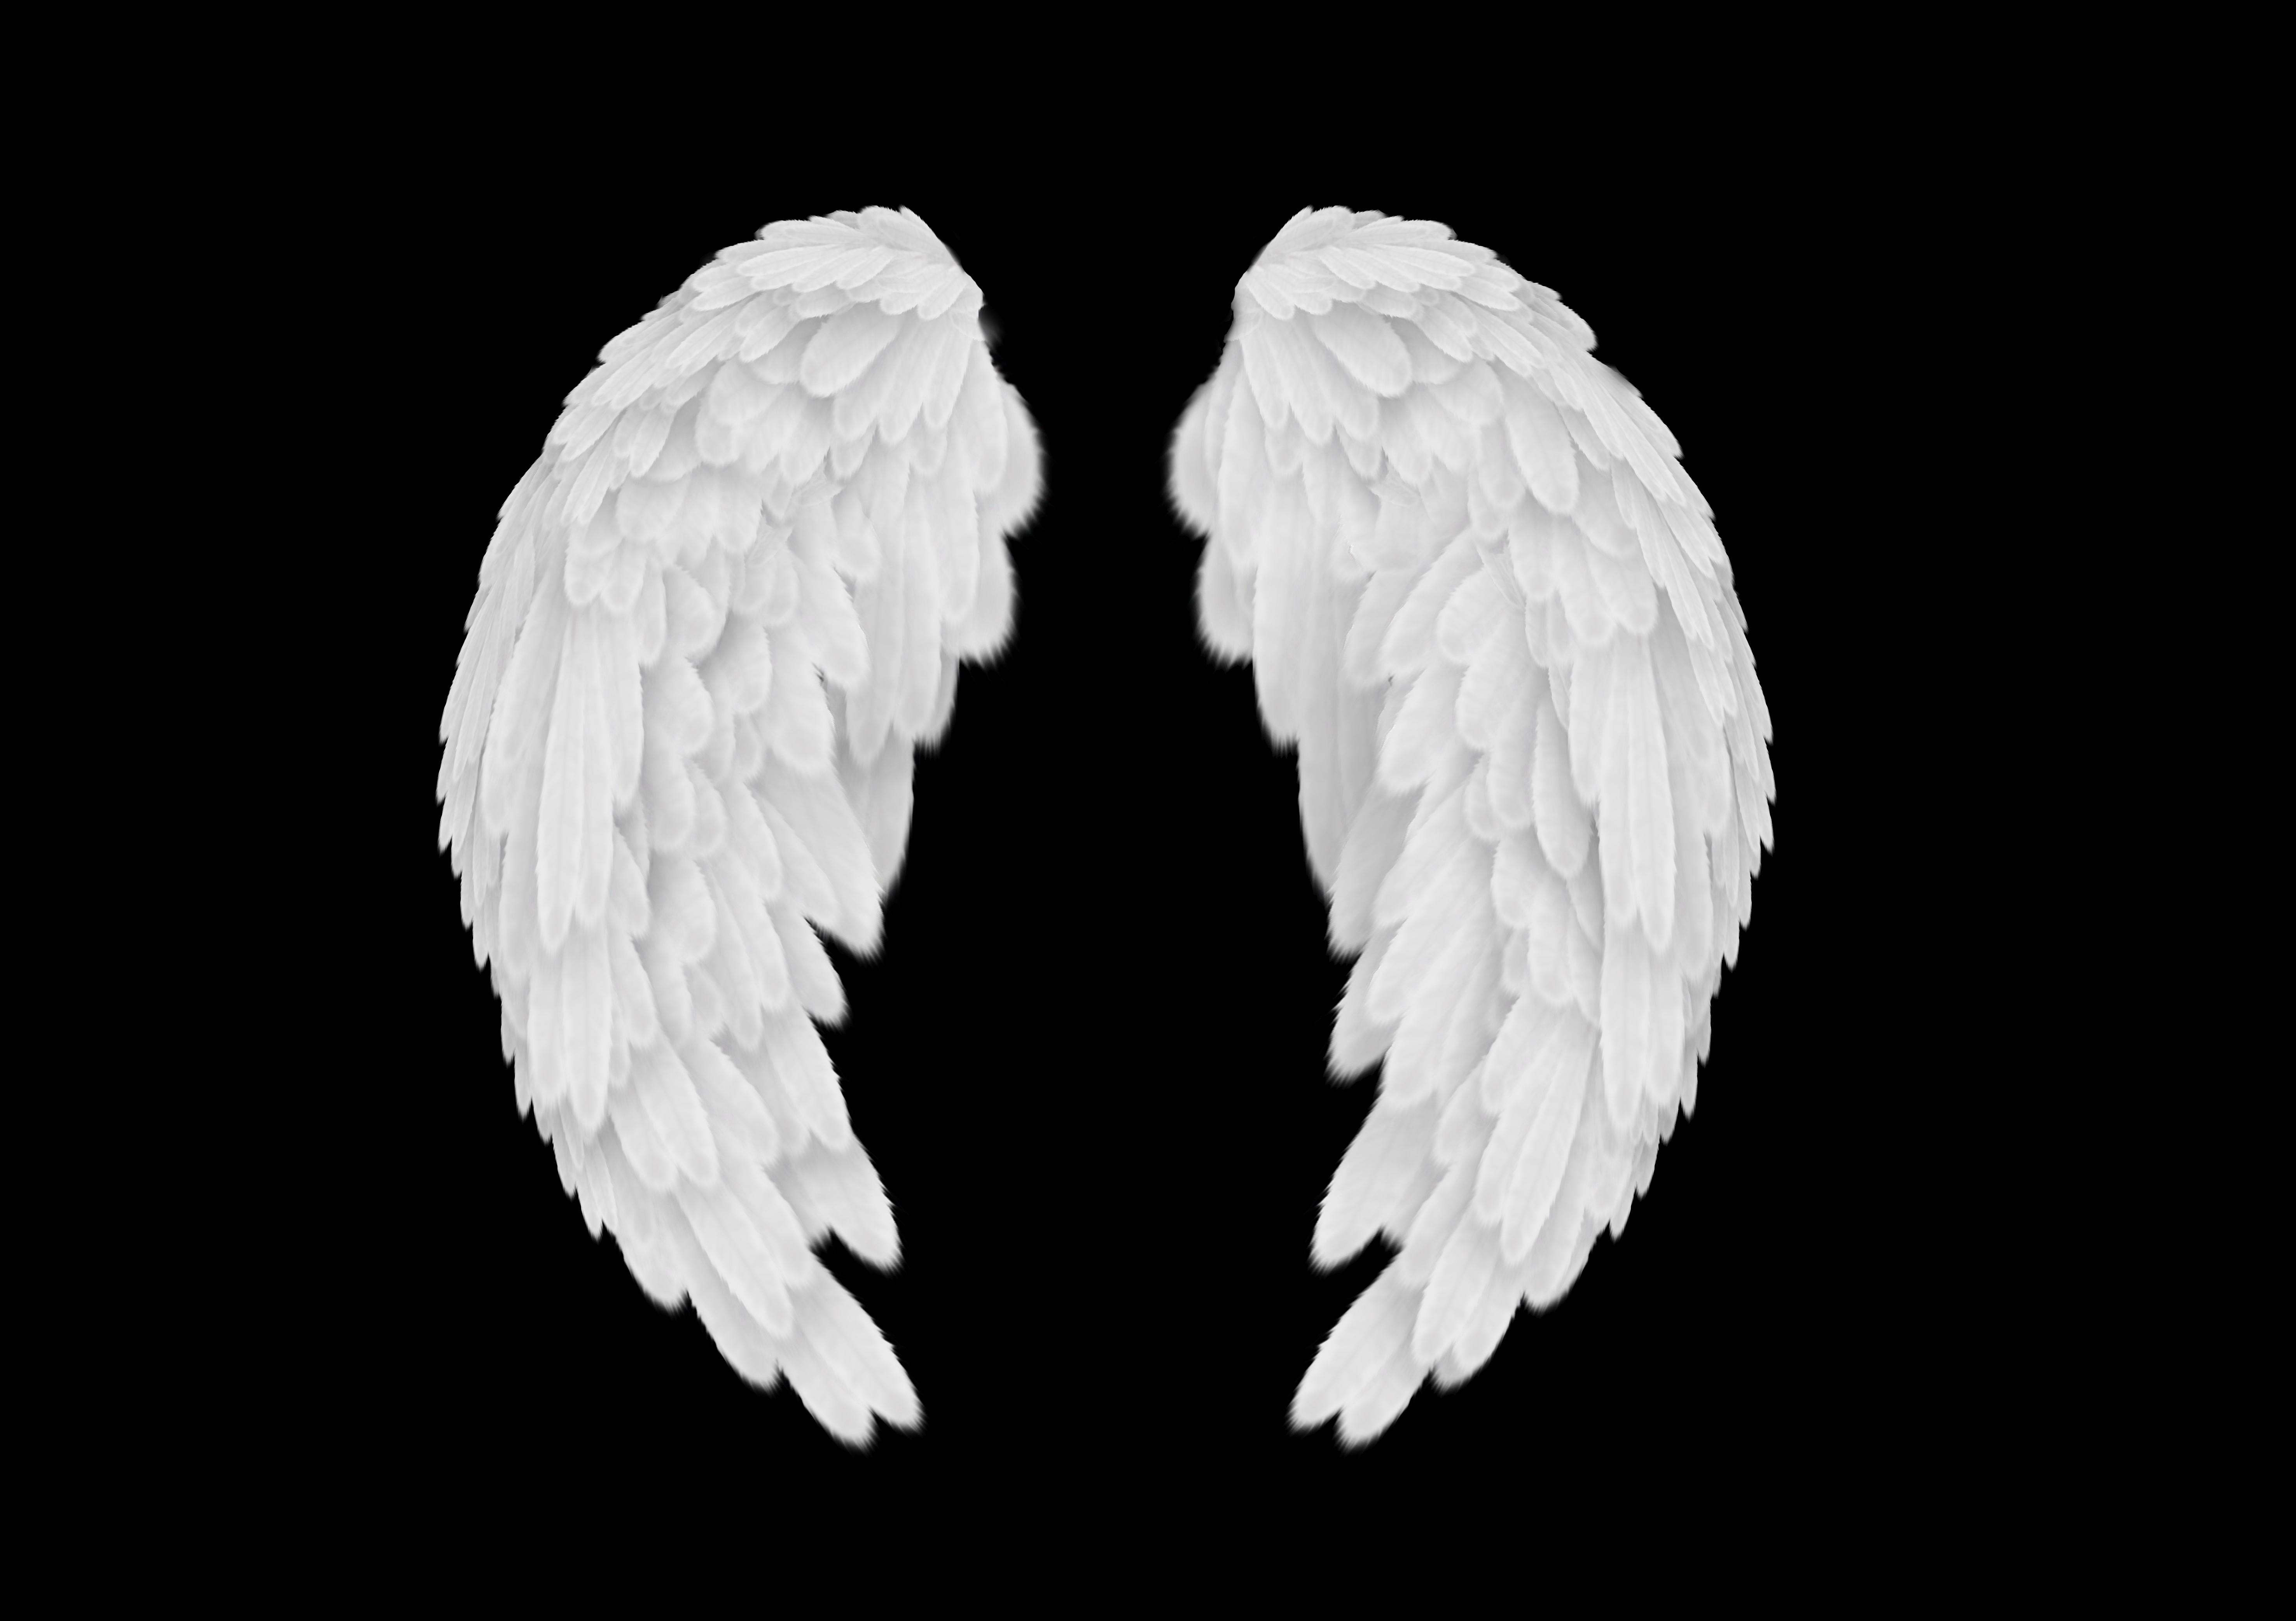 18 Fallen Angel Wing PSD Images